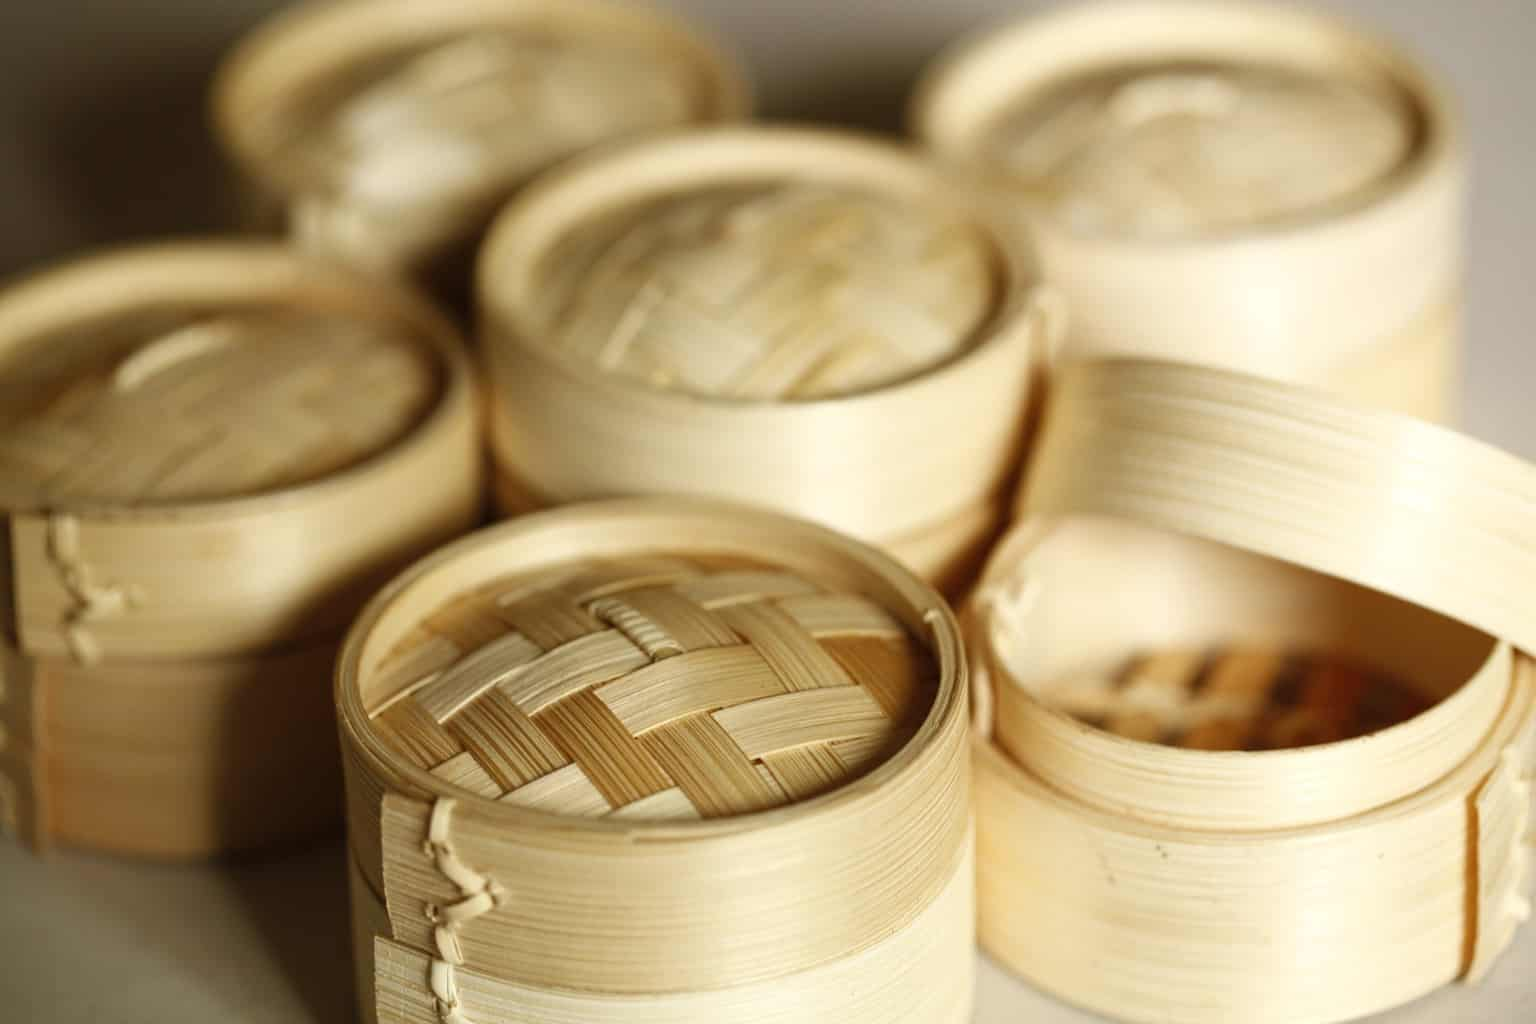 Smaller sized bamboo steamers